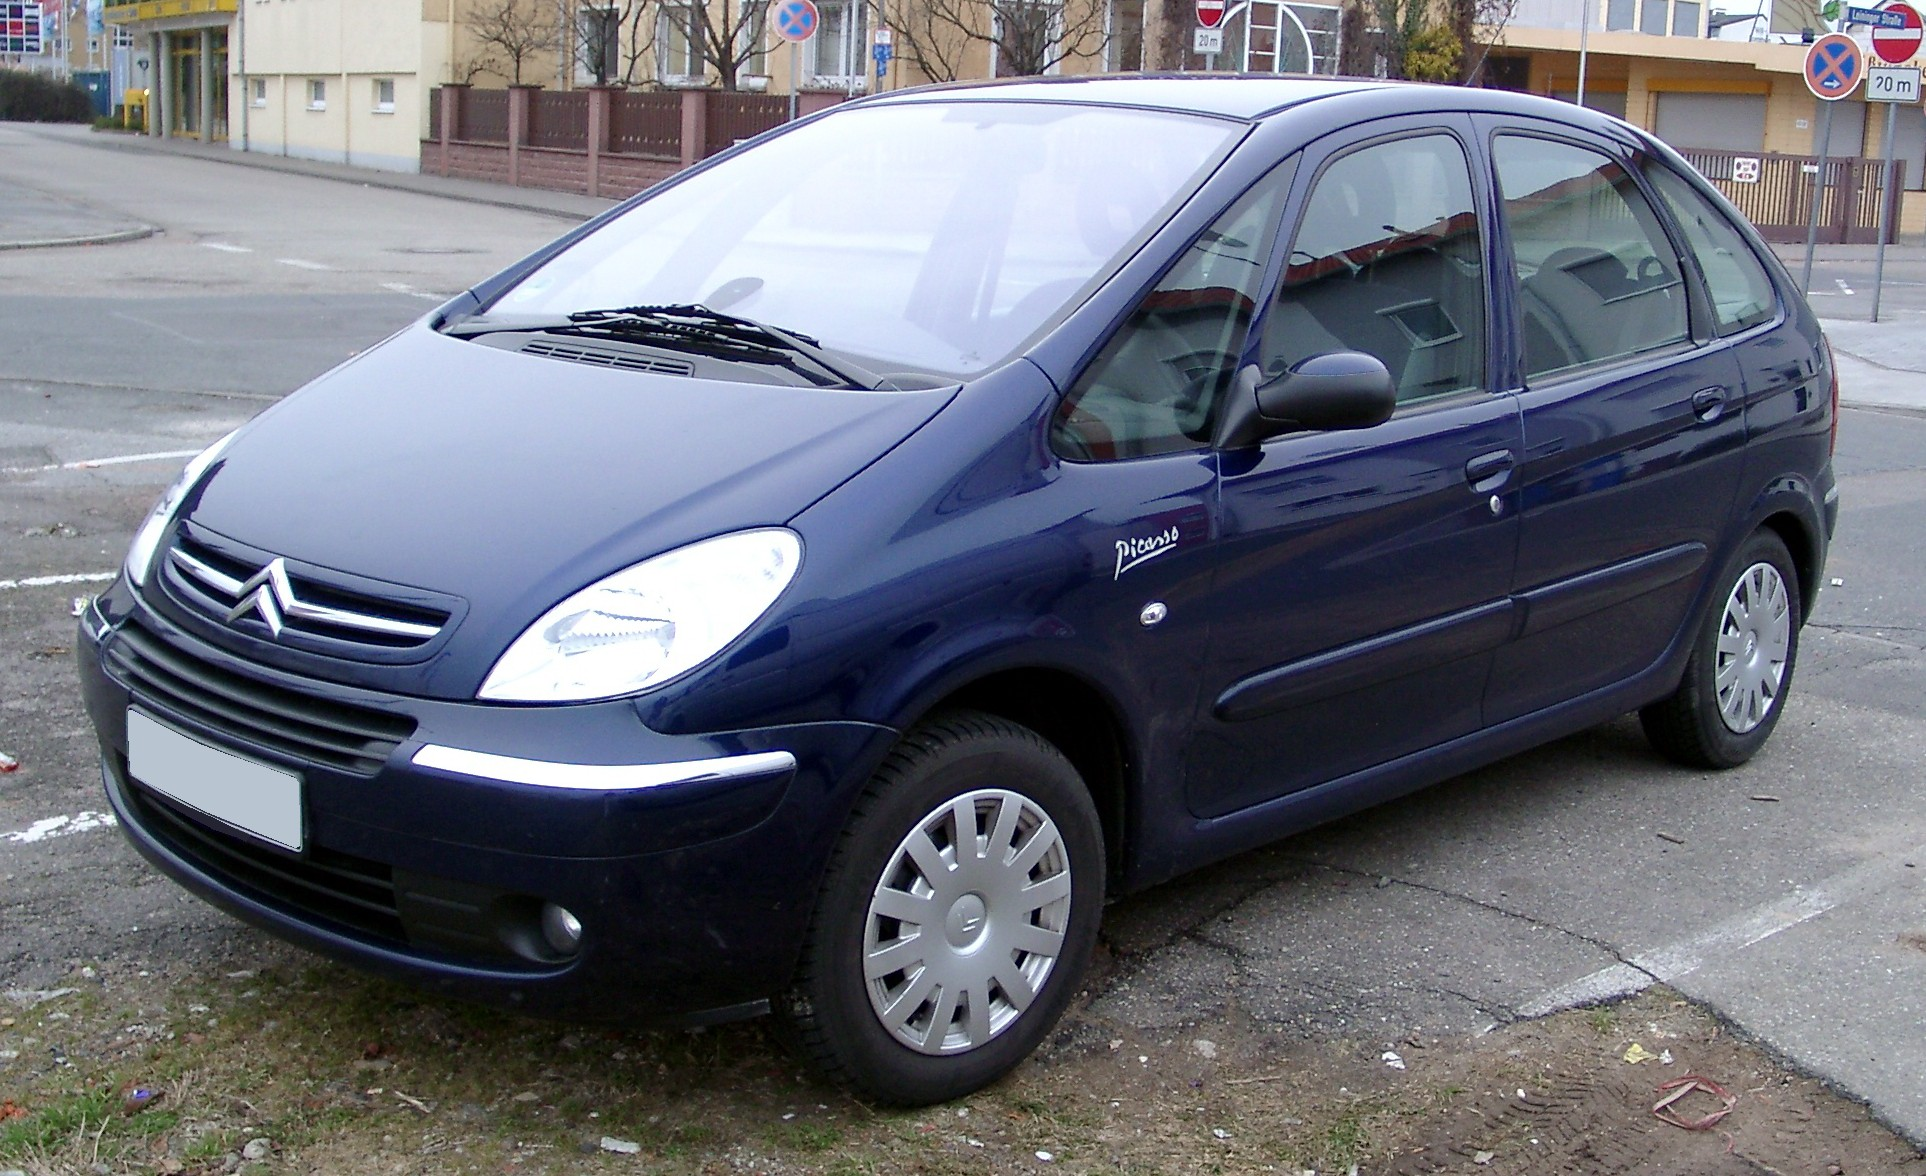 citroen xsara picasso photos news reviews specs car. Black Bedroom Furniture Sets. Home Design Ideas